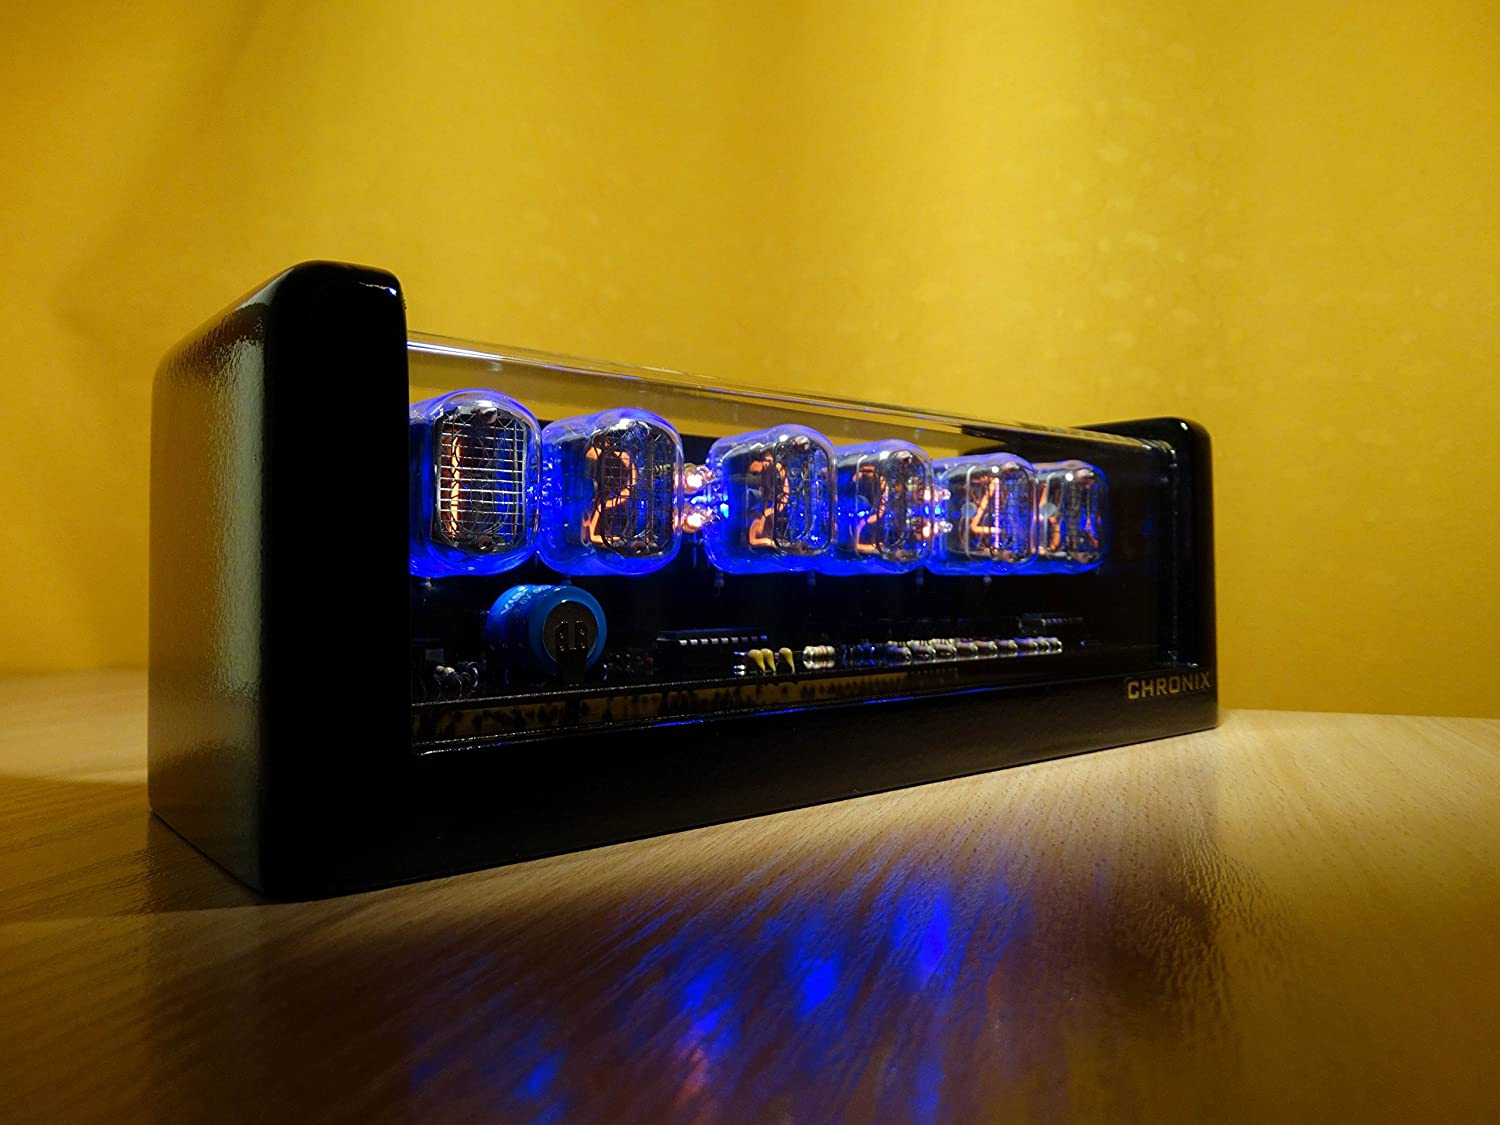 Amazon.com: Vintage Nixie Tube Clock with 6xIN-12 displays & Alarm & Blue Backlight & Black Glossy Wooden case CHRONIX: Home Audio & Theater